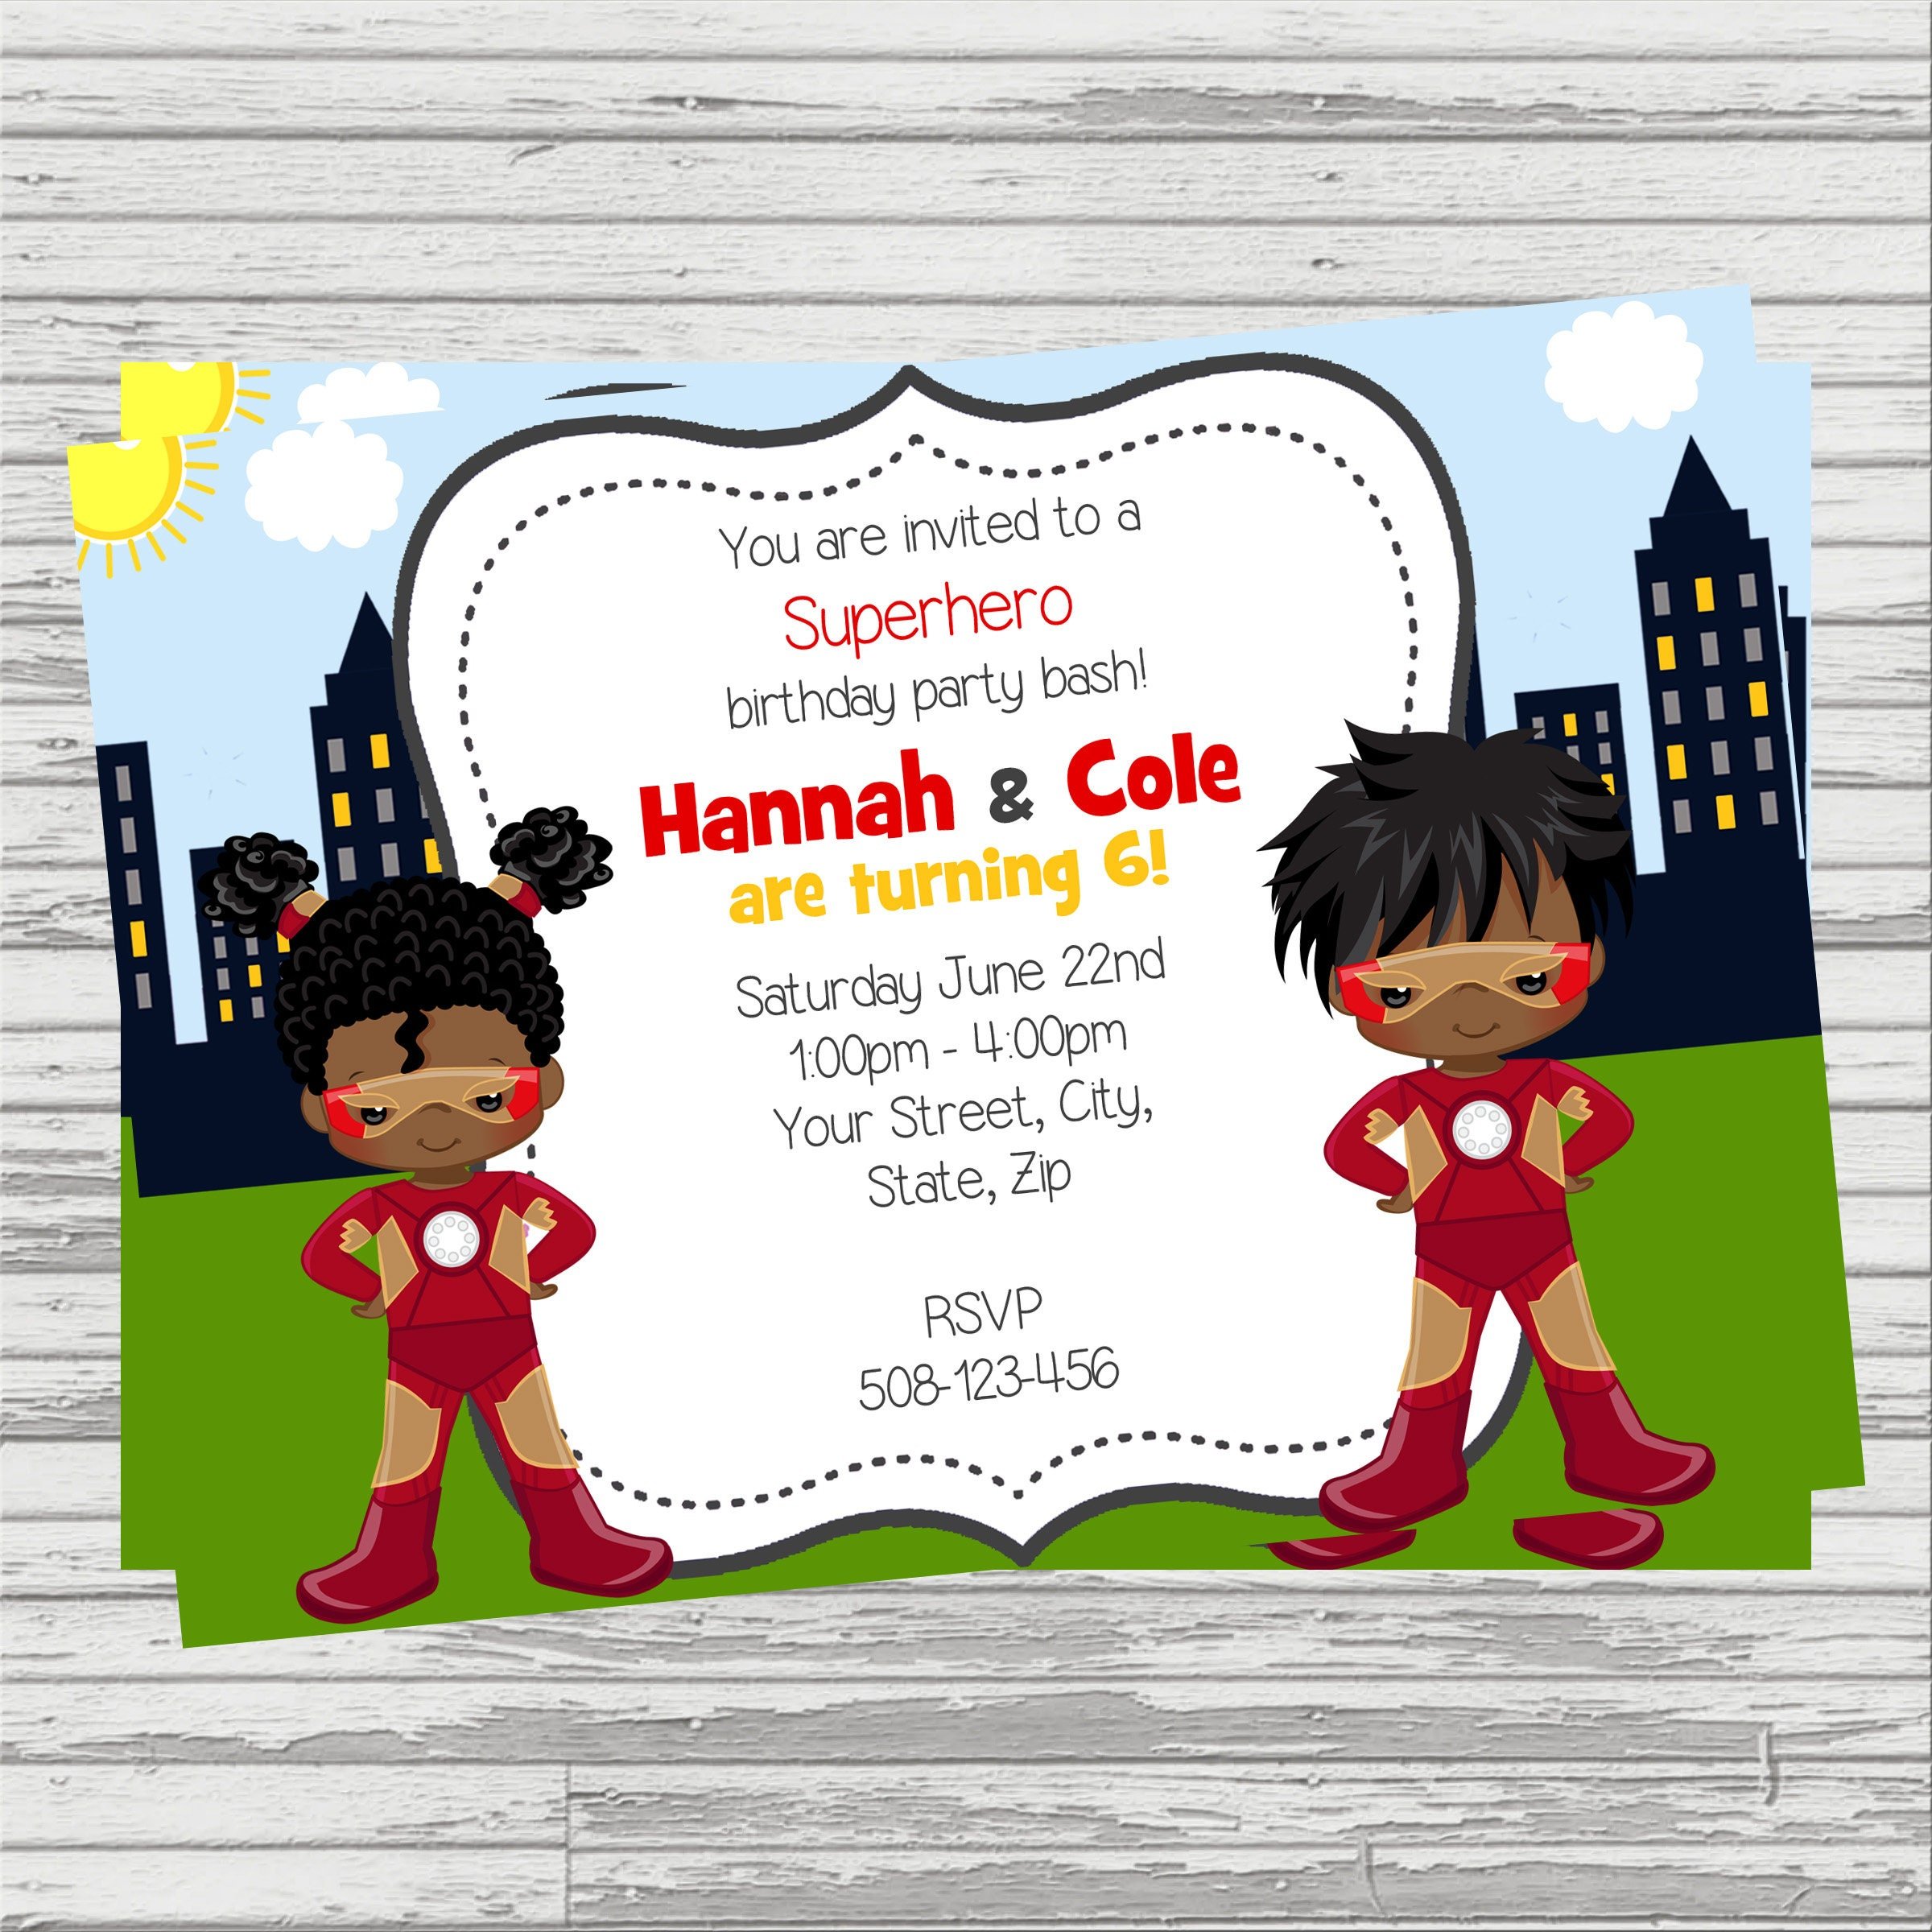 African American Ironman & Irongirl Twins/Joint Party Custom   Etsy